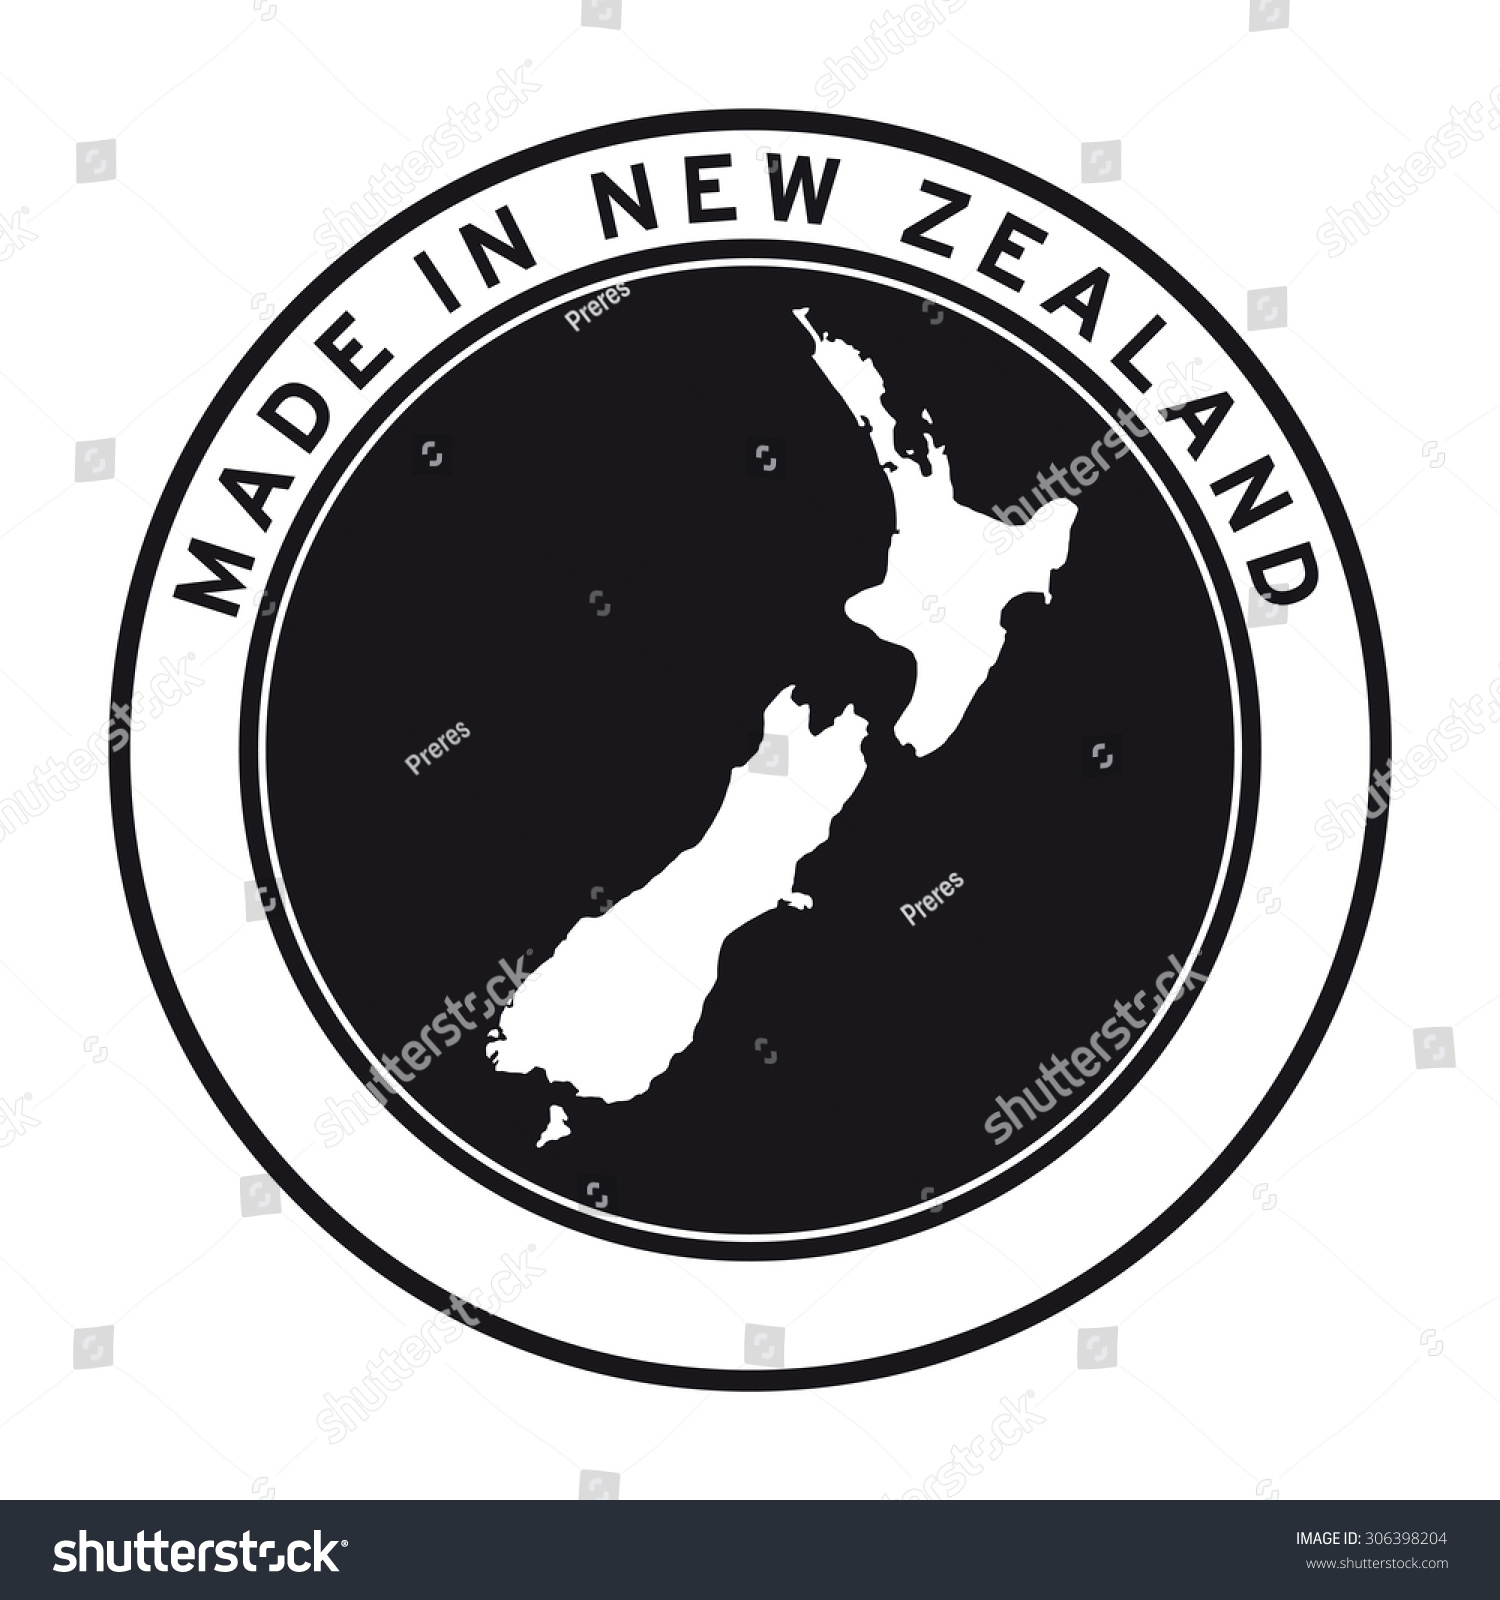 Made in new zealand vector logo sticker button